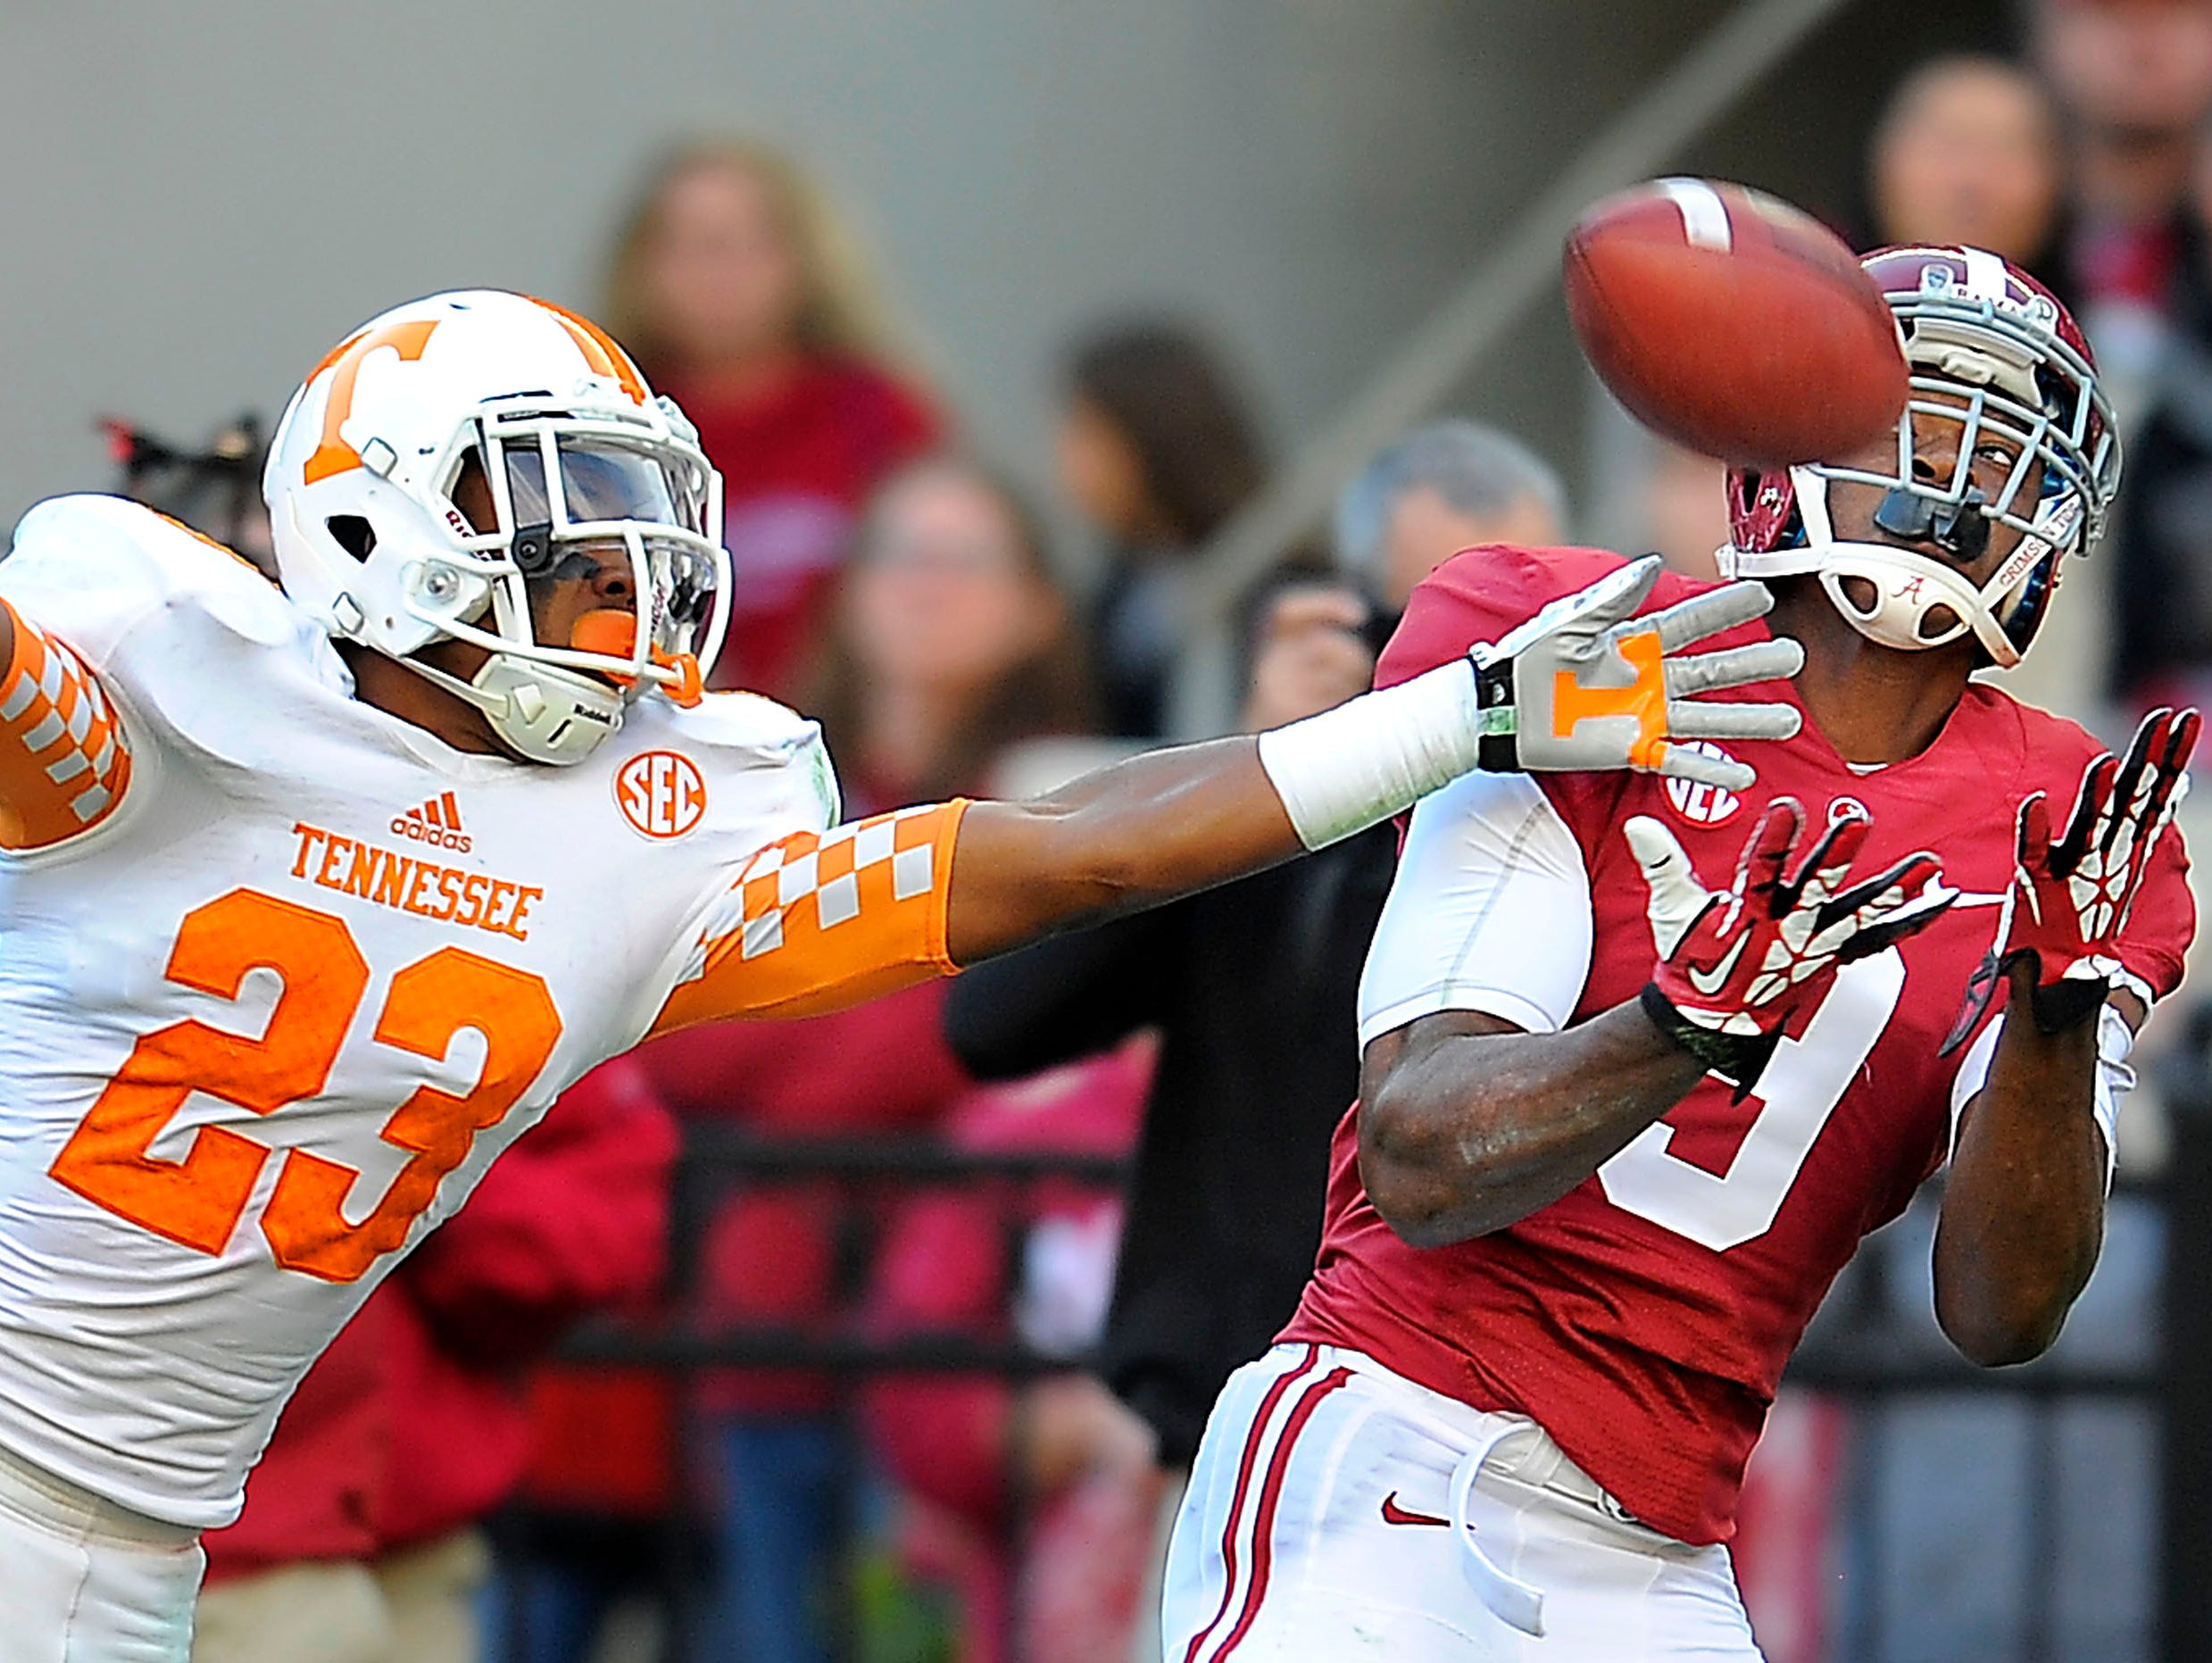 Tennessee defensive back Cameron Sutton (23) is a step behind Alabama wide receiver Amari Cooper (9) and can't keep him from catching a pass as the University of Tennessee plays Alabama at Bryant-Denny Stadium in Tuscaloosa on Saturday Oct. 26, 2013.